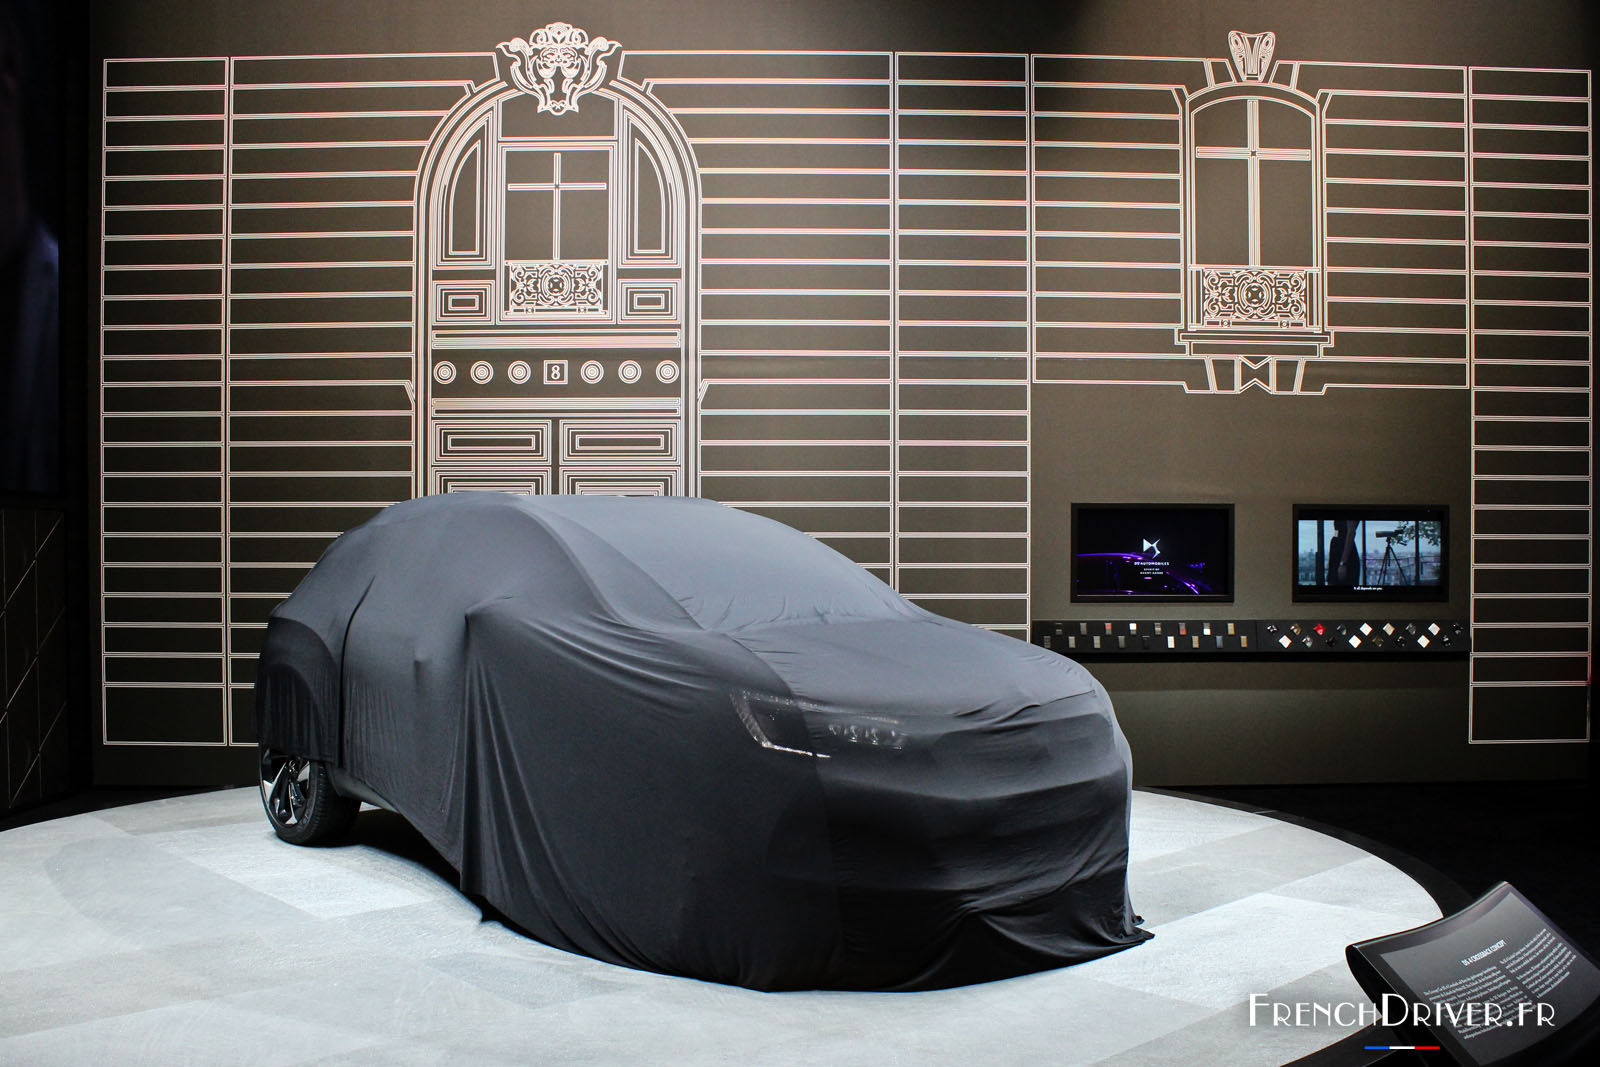 ds automobiles au salon de francfort 2015 french driver. Black Bedroom Furniture Sets. Home Design Ideas